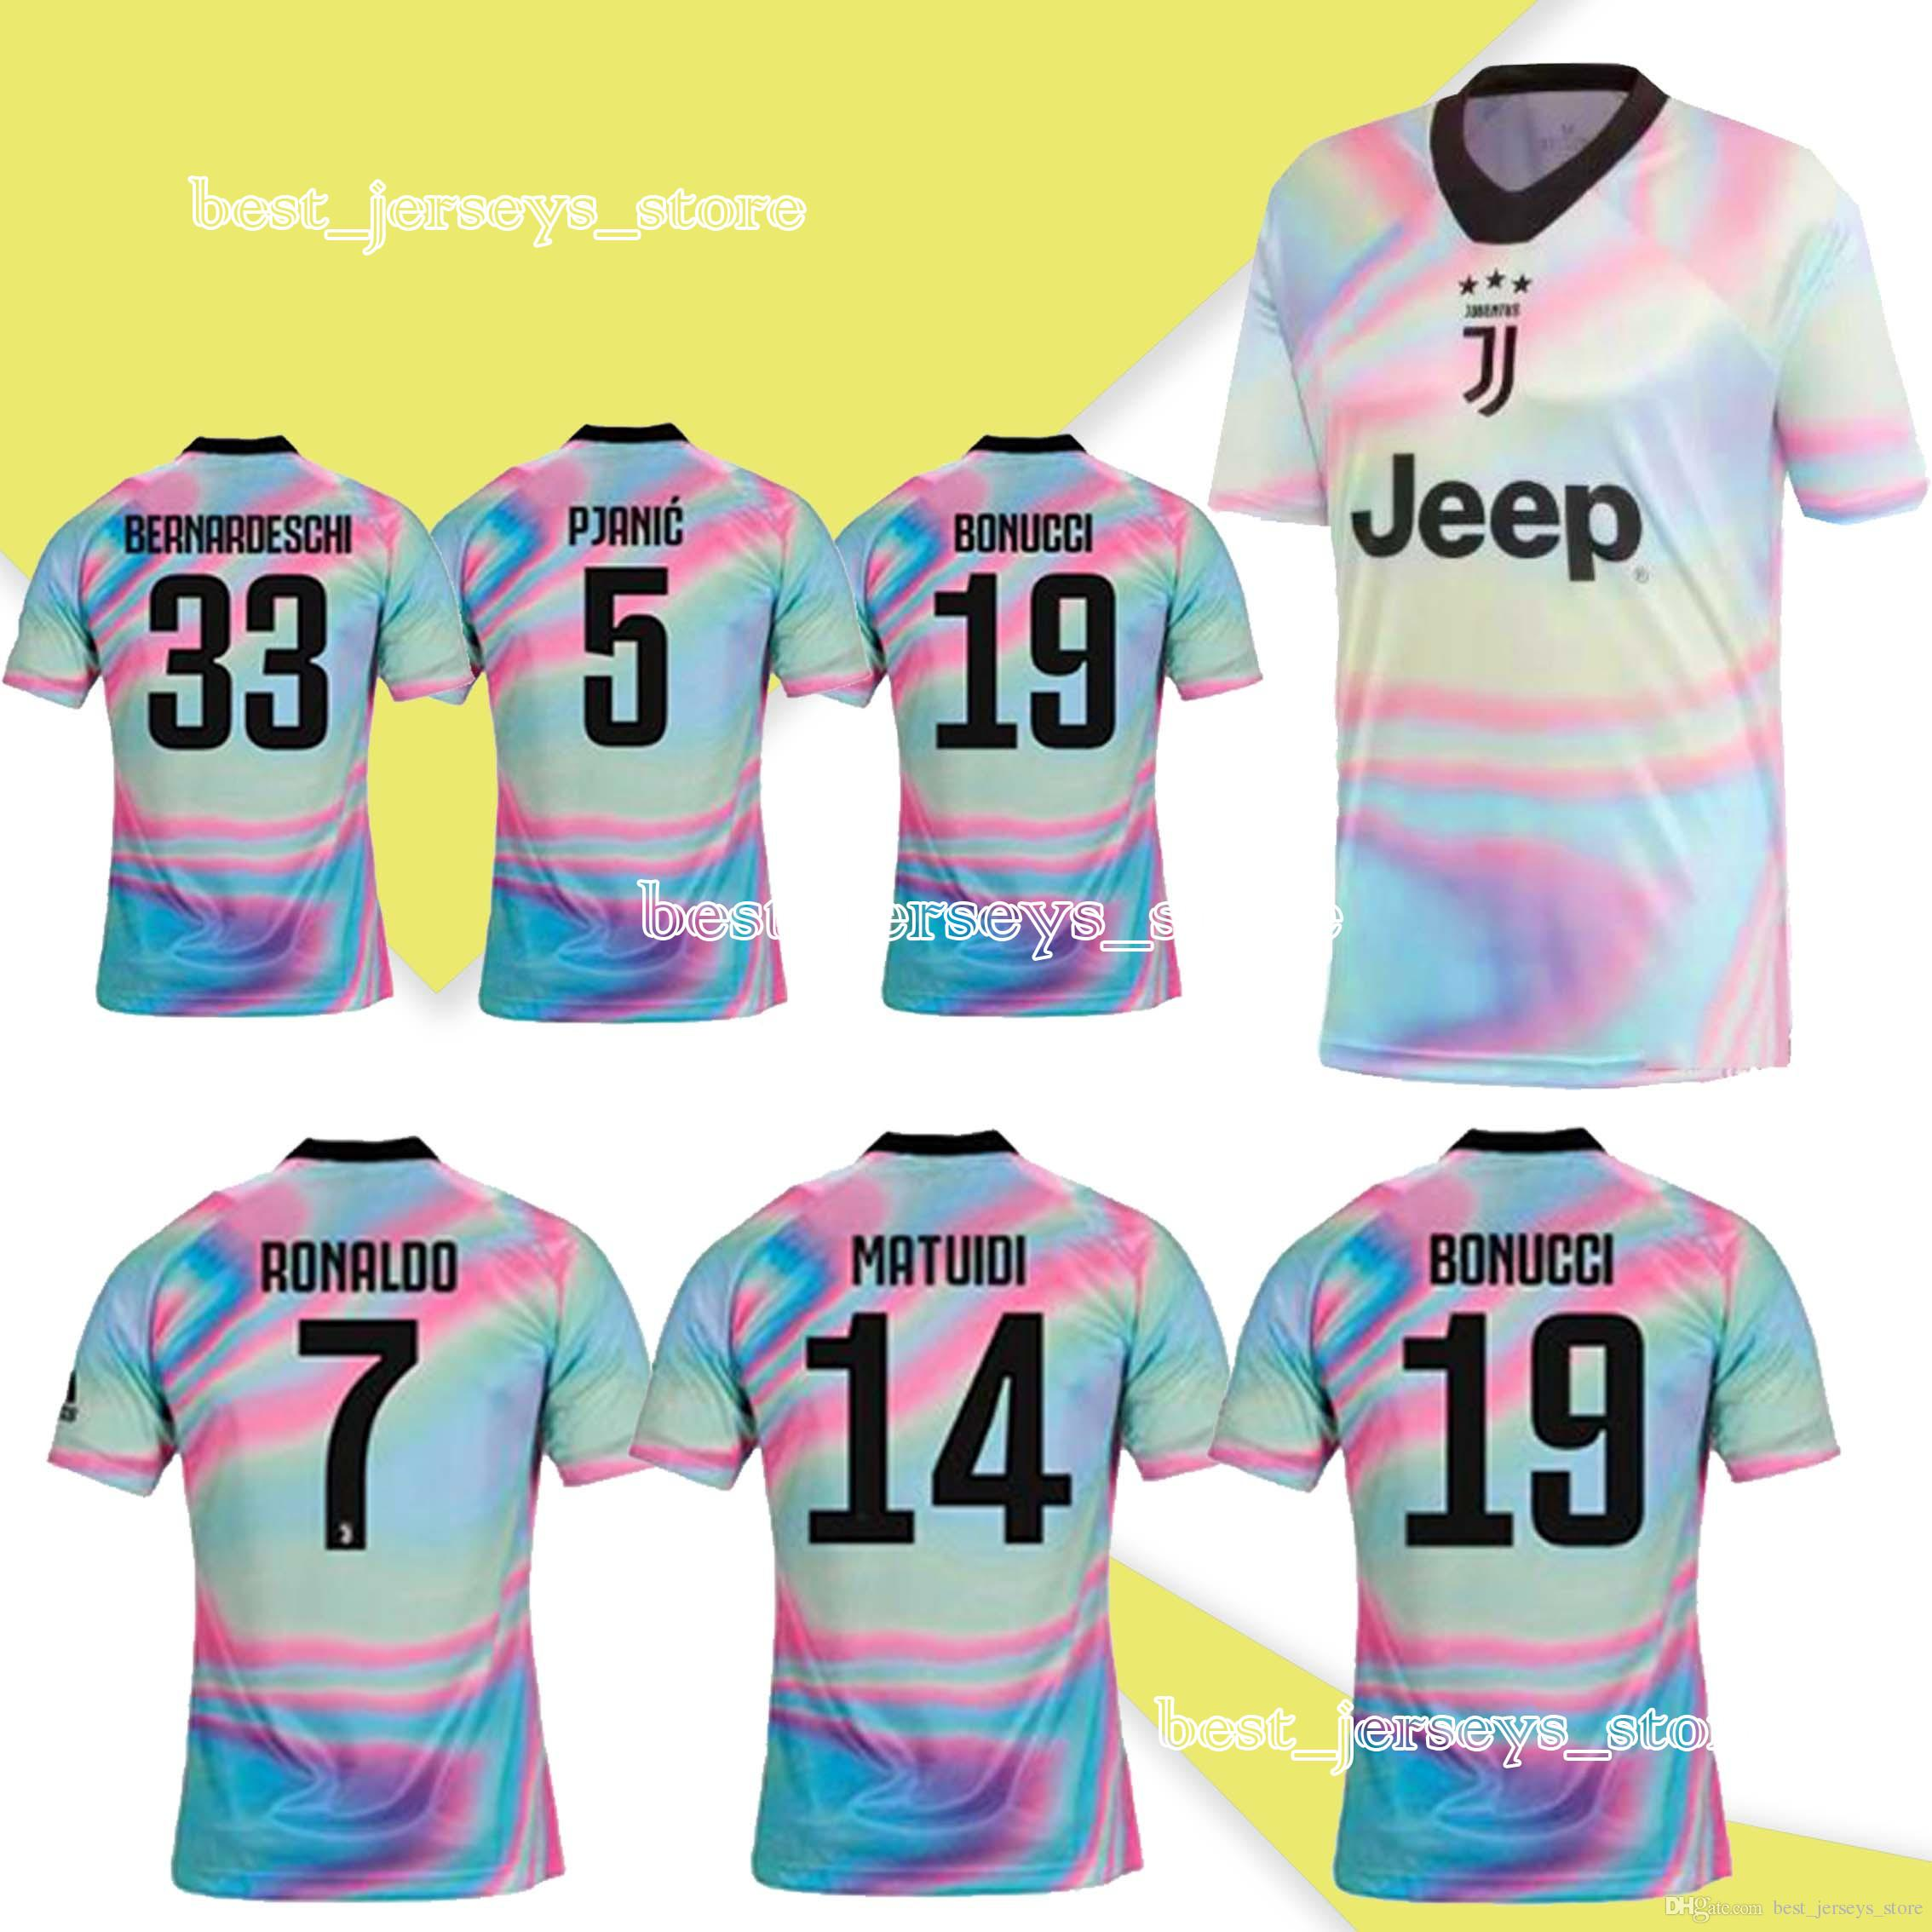 uk availability b594a 987c5 New 2019 Juventus Limited Edition Soccer Jersey White EA Sports Jerseys #7  RONALDO #10 DYBALA Juventus Special Version Football Shirts UK 2019 From ...